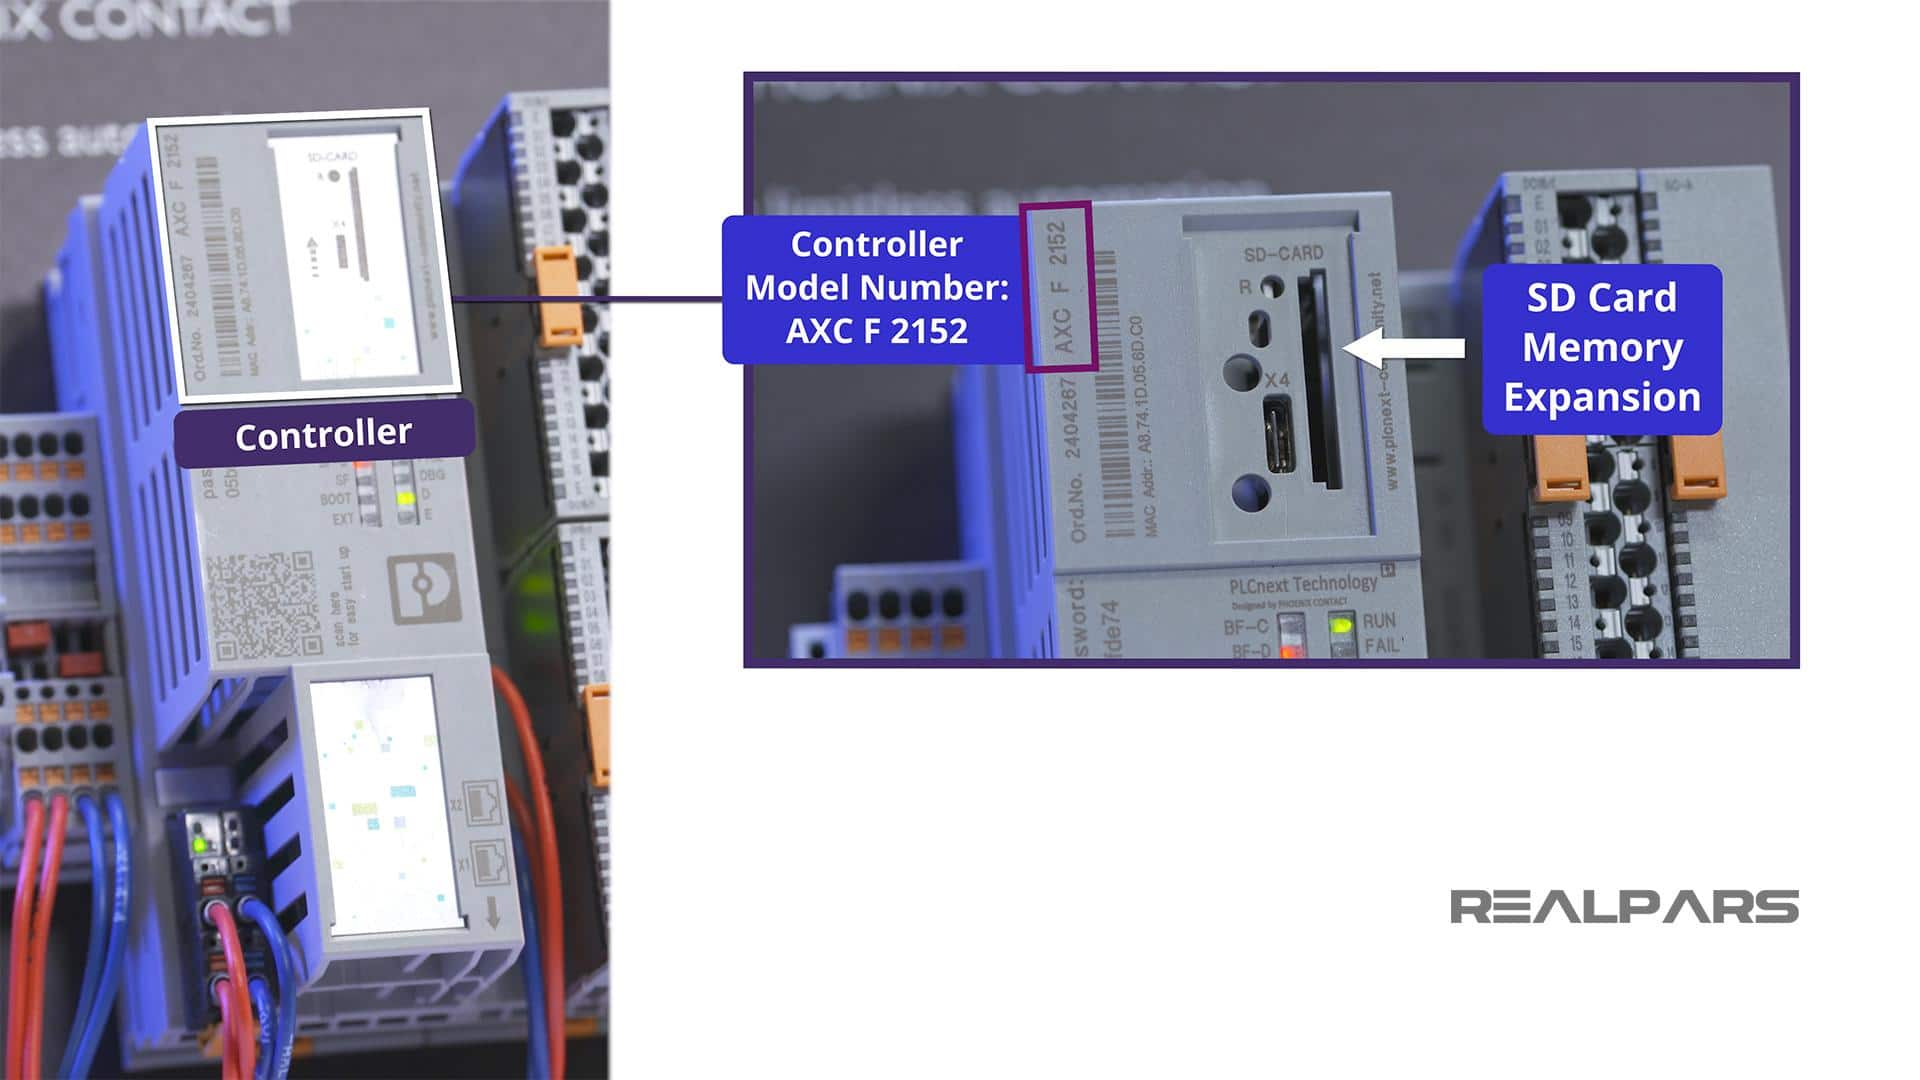 Controller Model and SD-CARD Expansion location